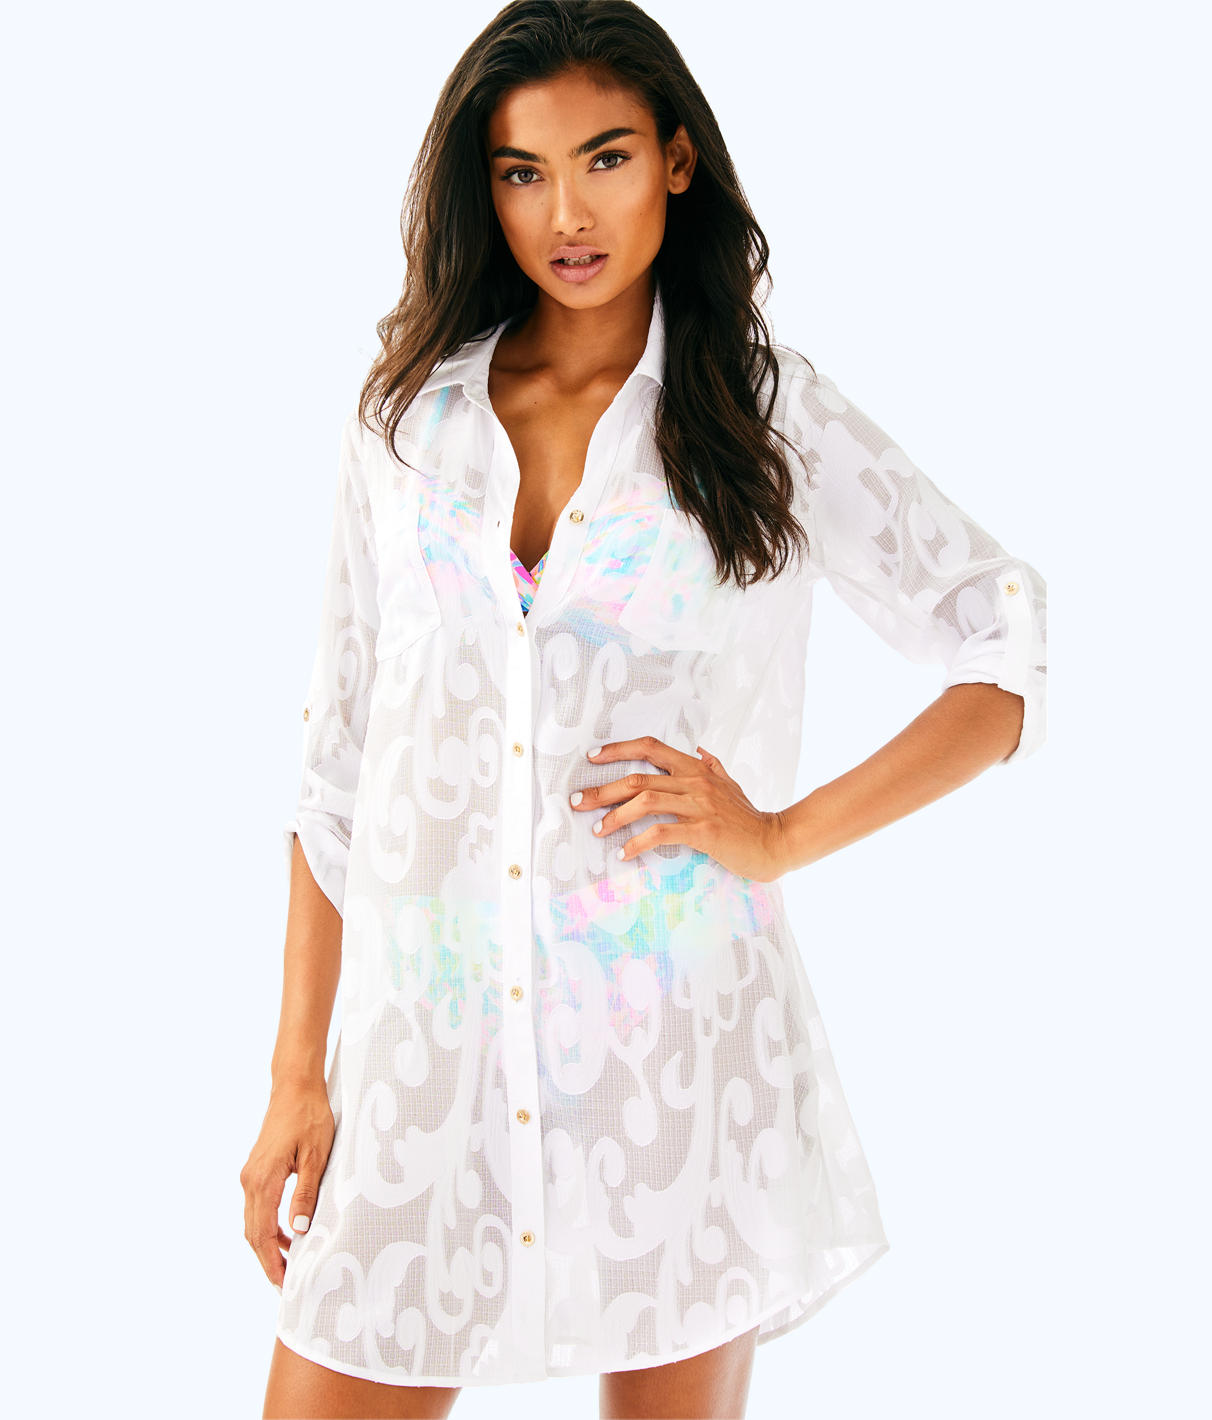 Lilly Pulitzer Lilly Pulitzer Womens Lilly Pulitzer Natalie Coverup